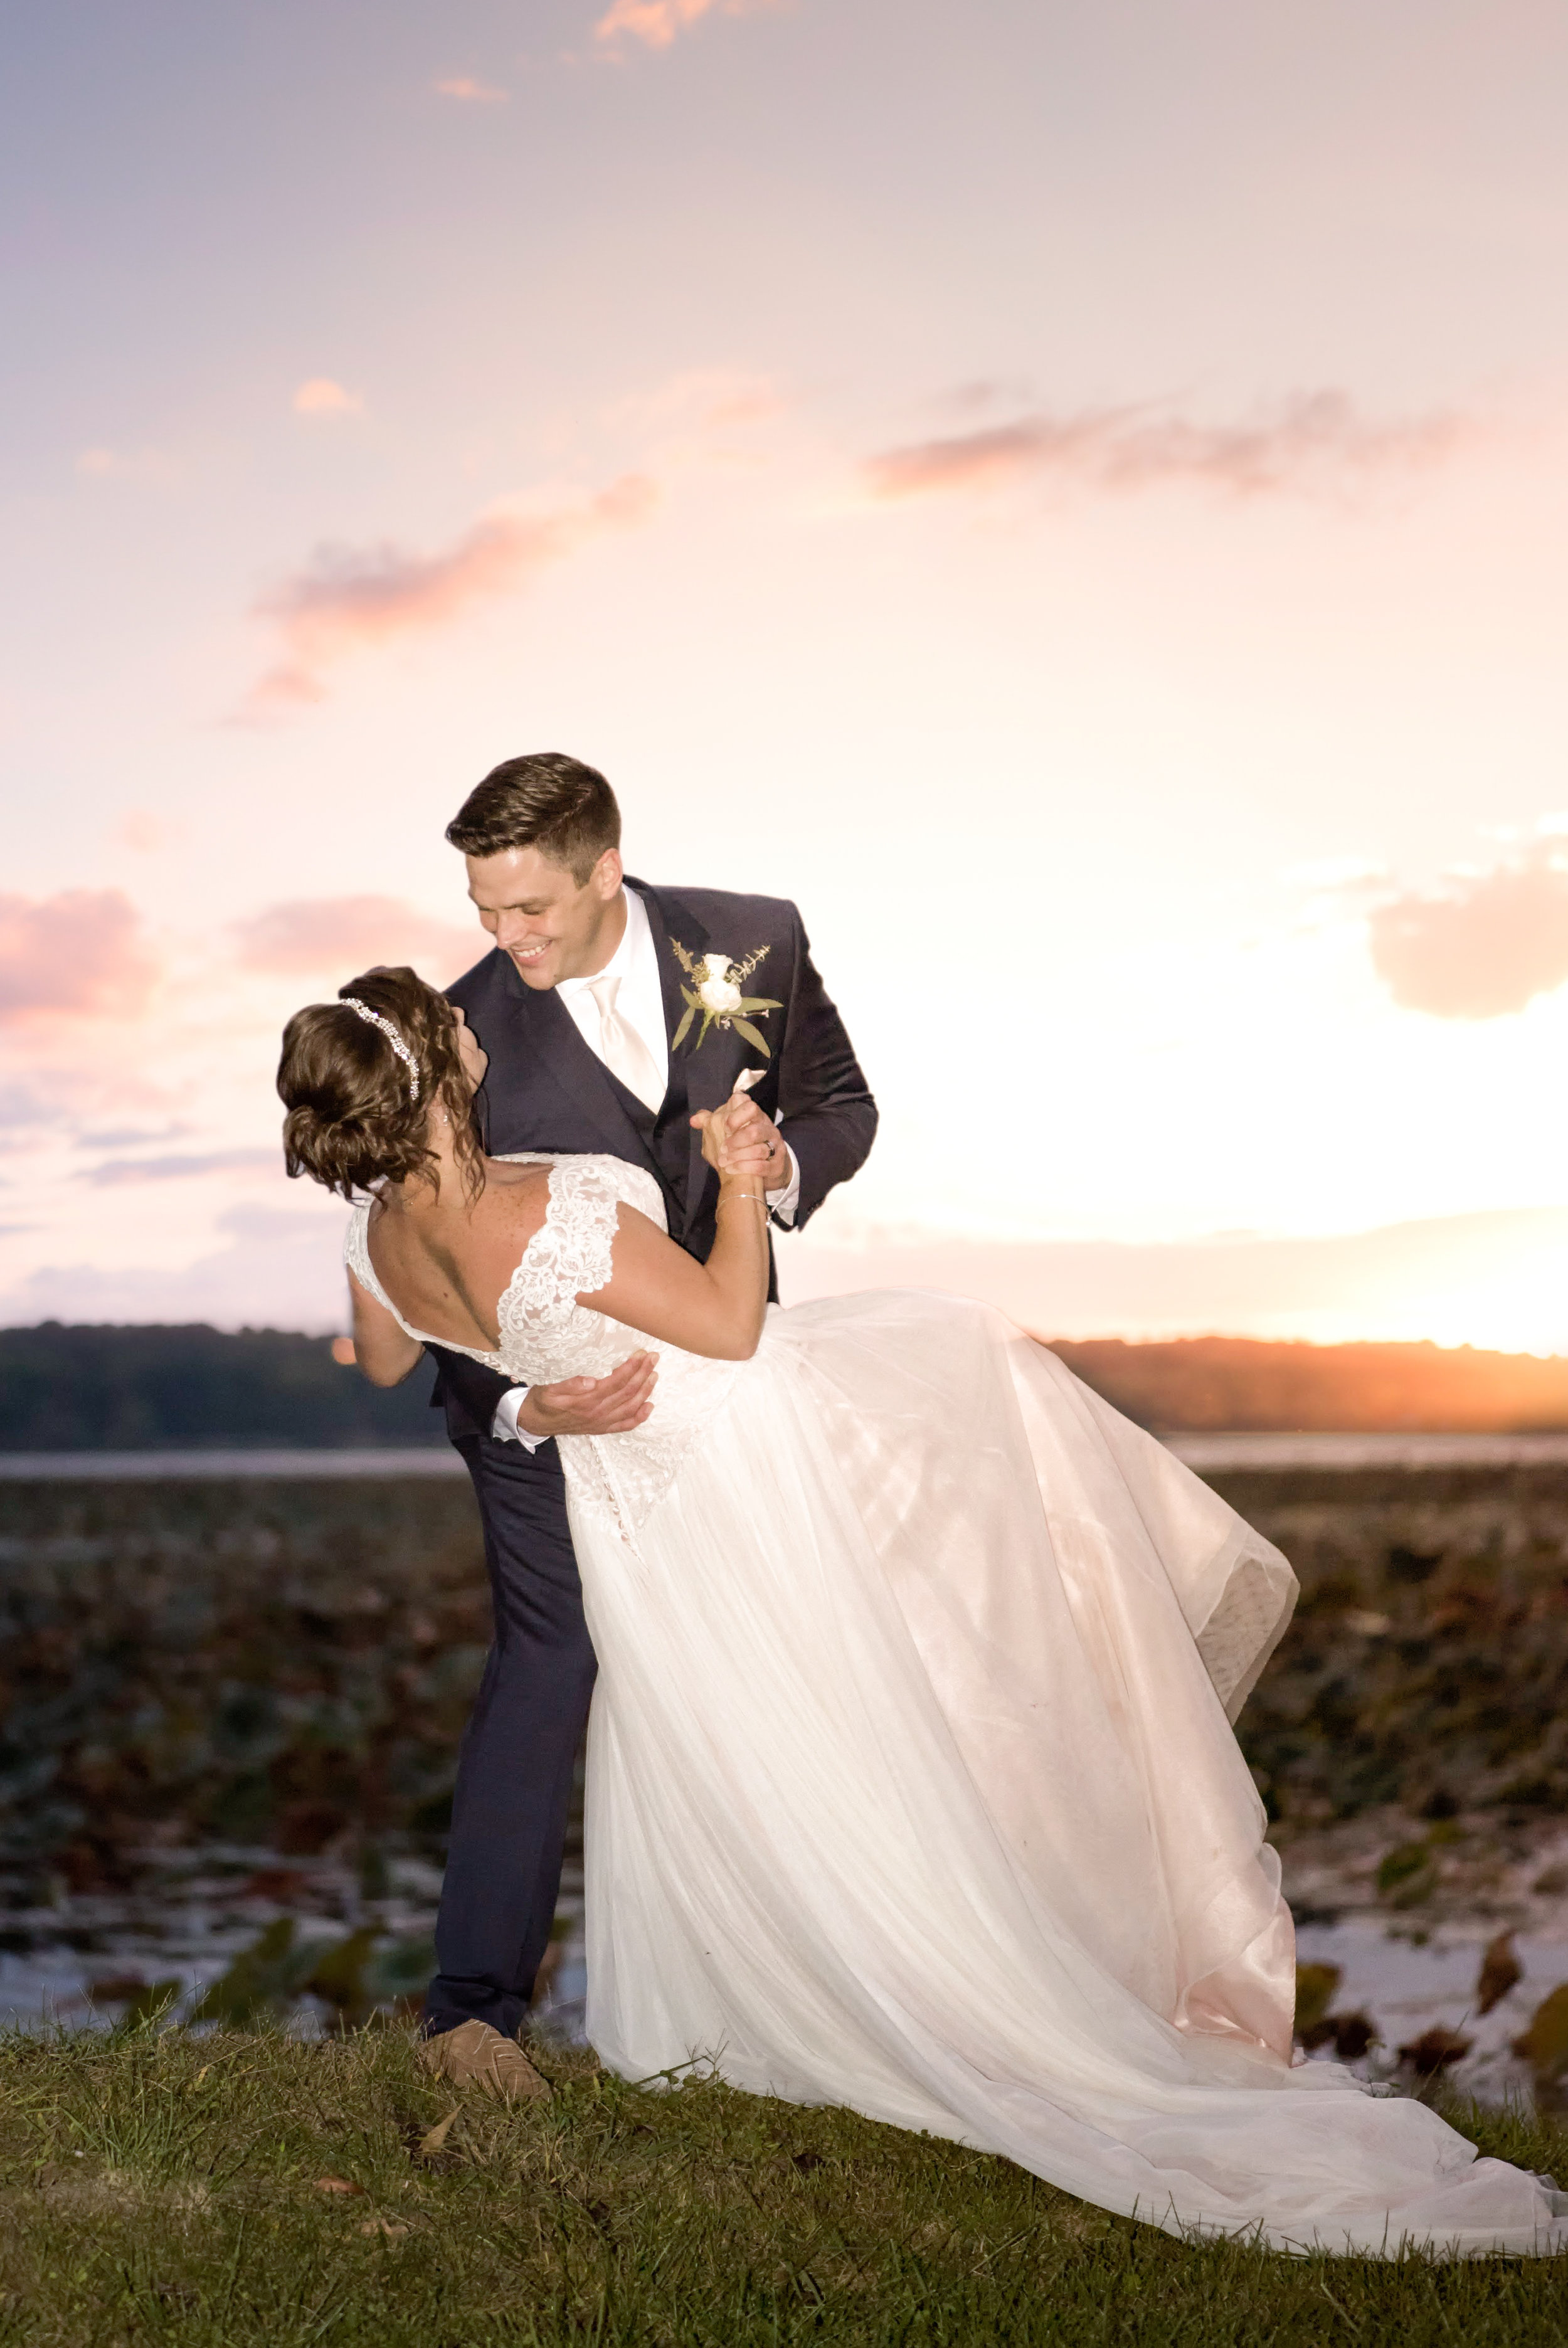 groom-sweeping-bride-off-her-feet-beautiful-sunset.jpg